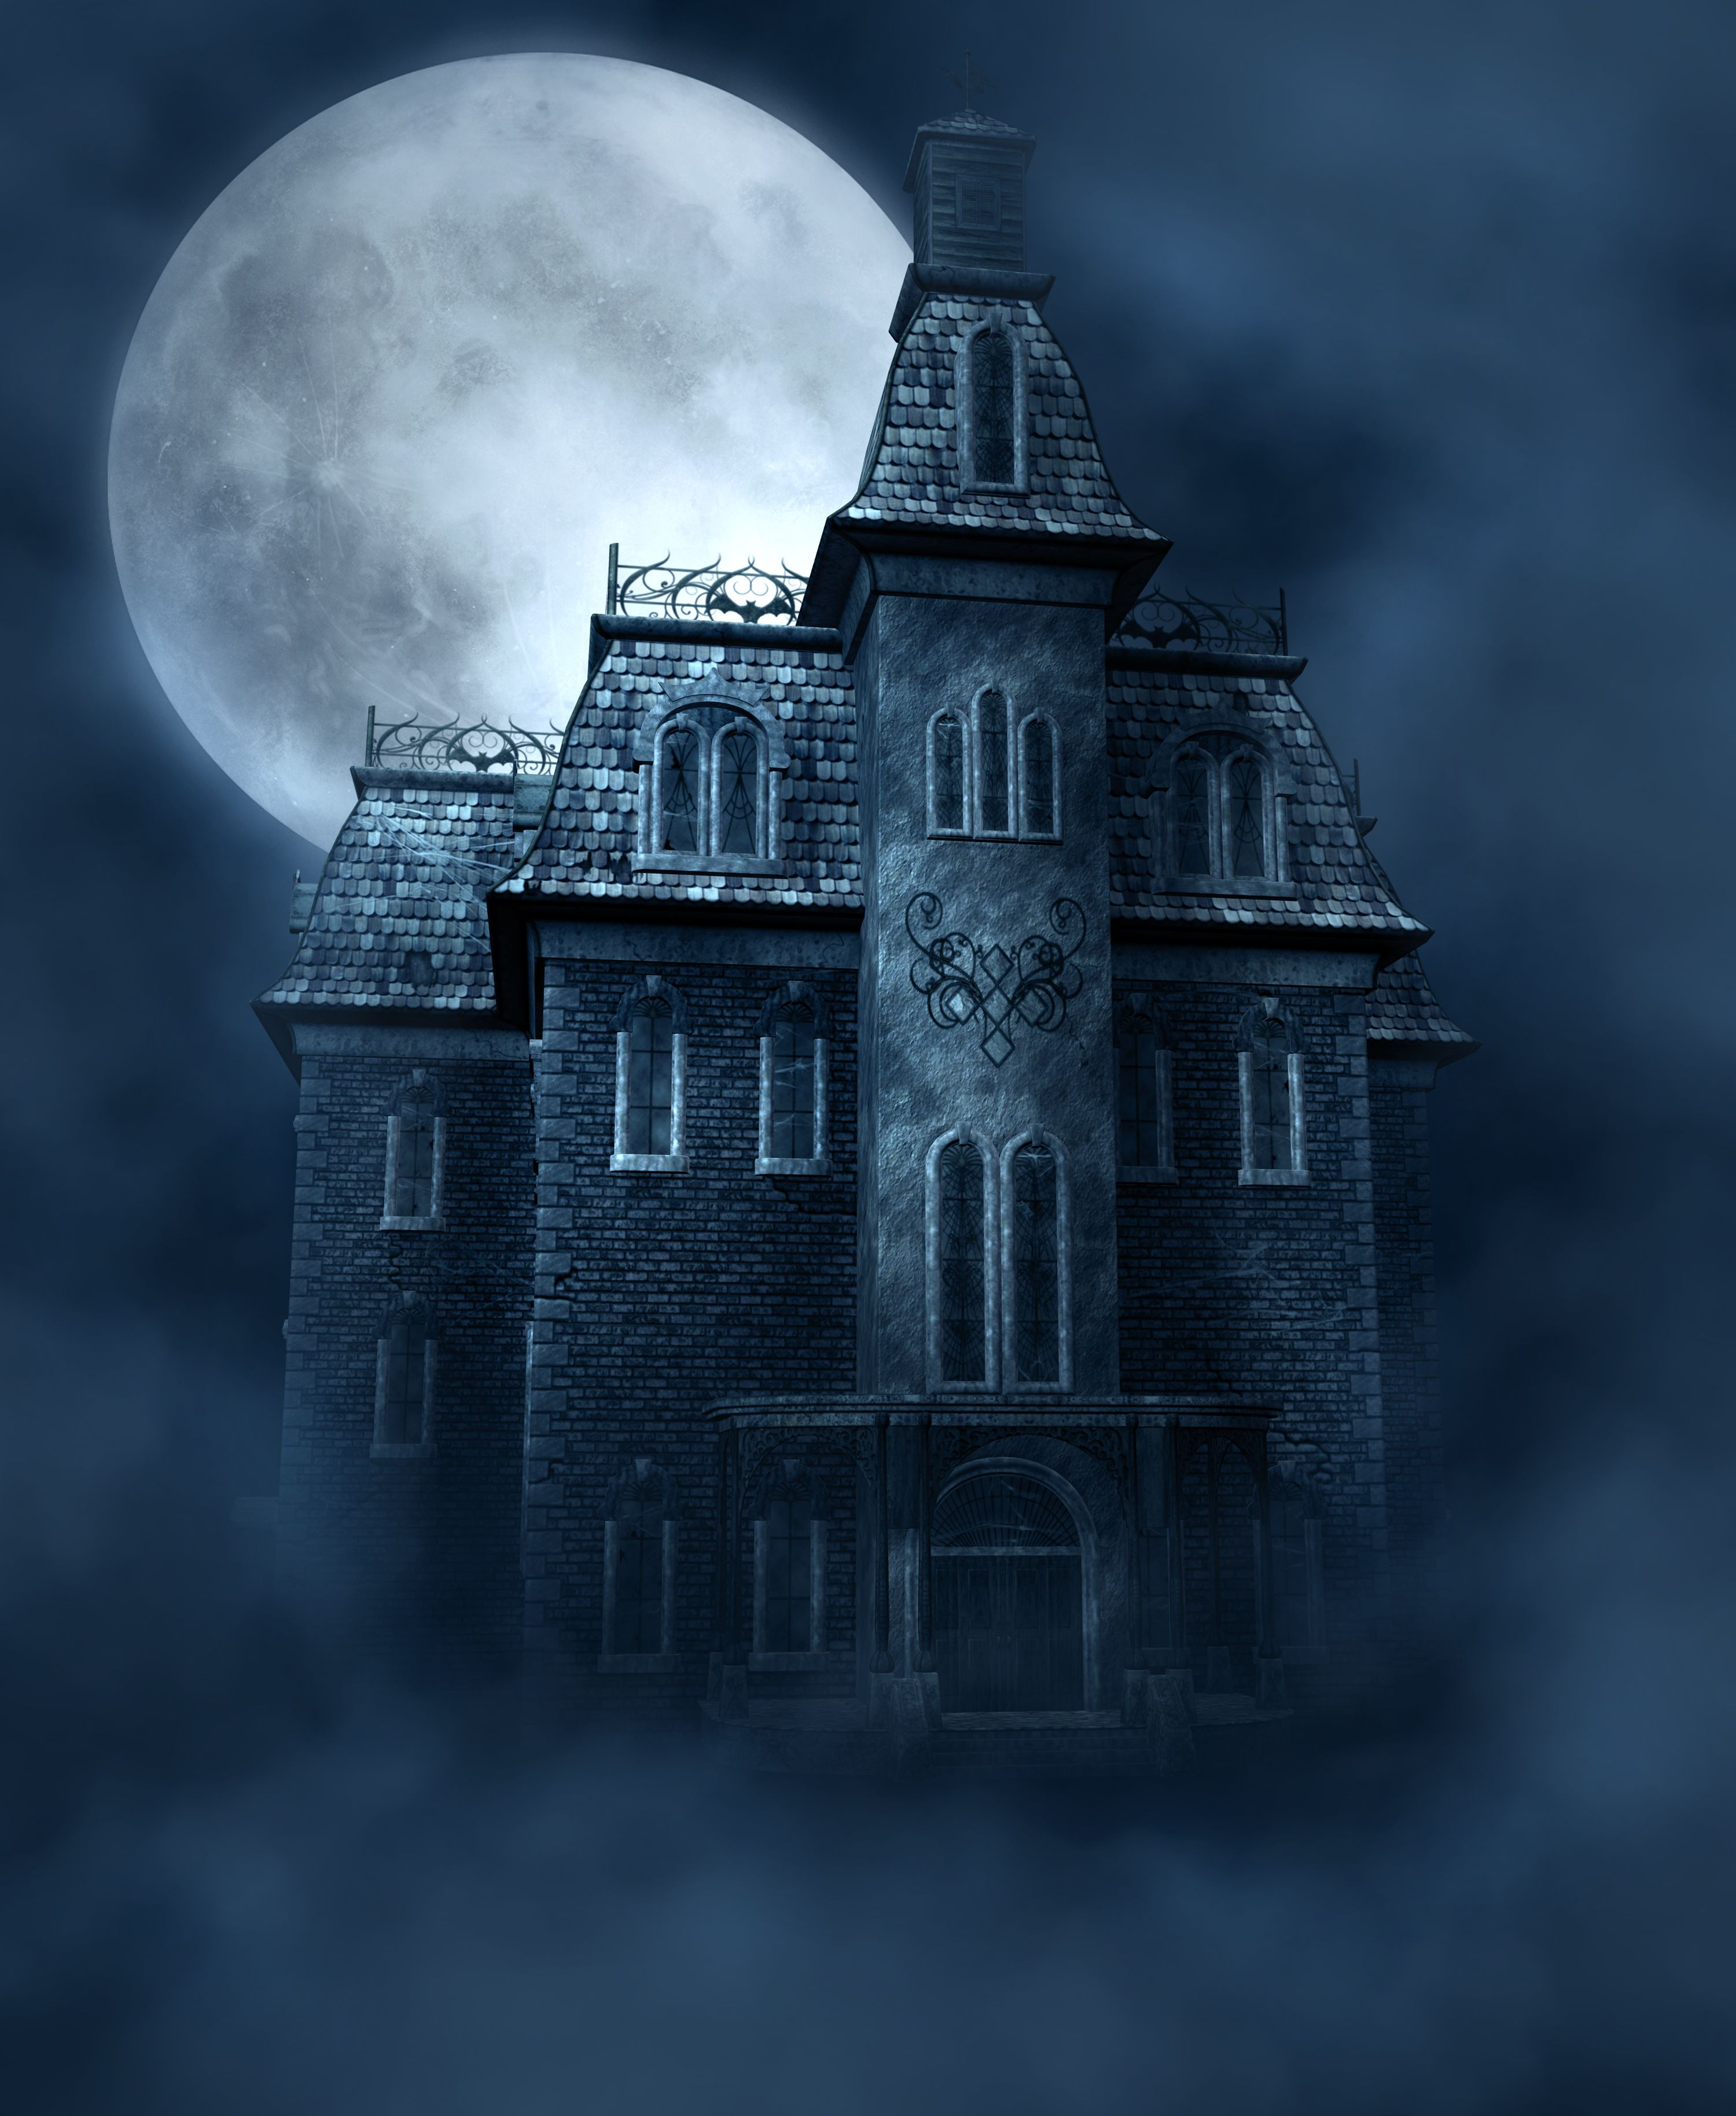 Haunted house moon pinterest for Pinterest haunted house